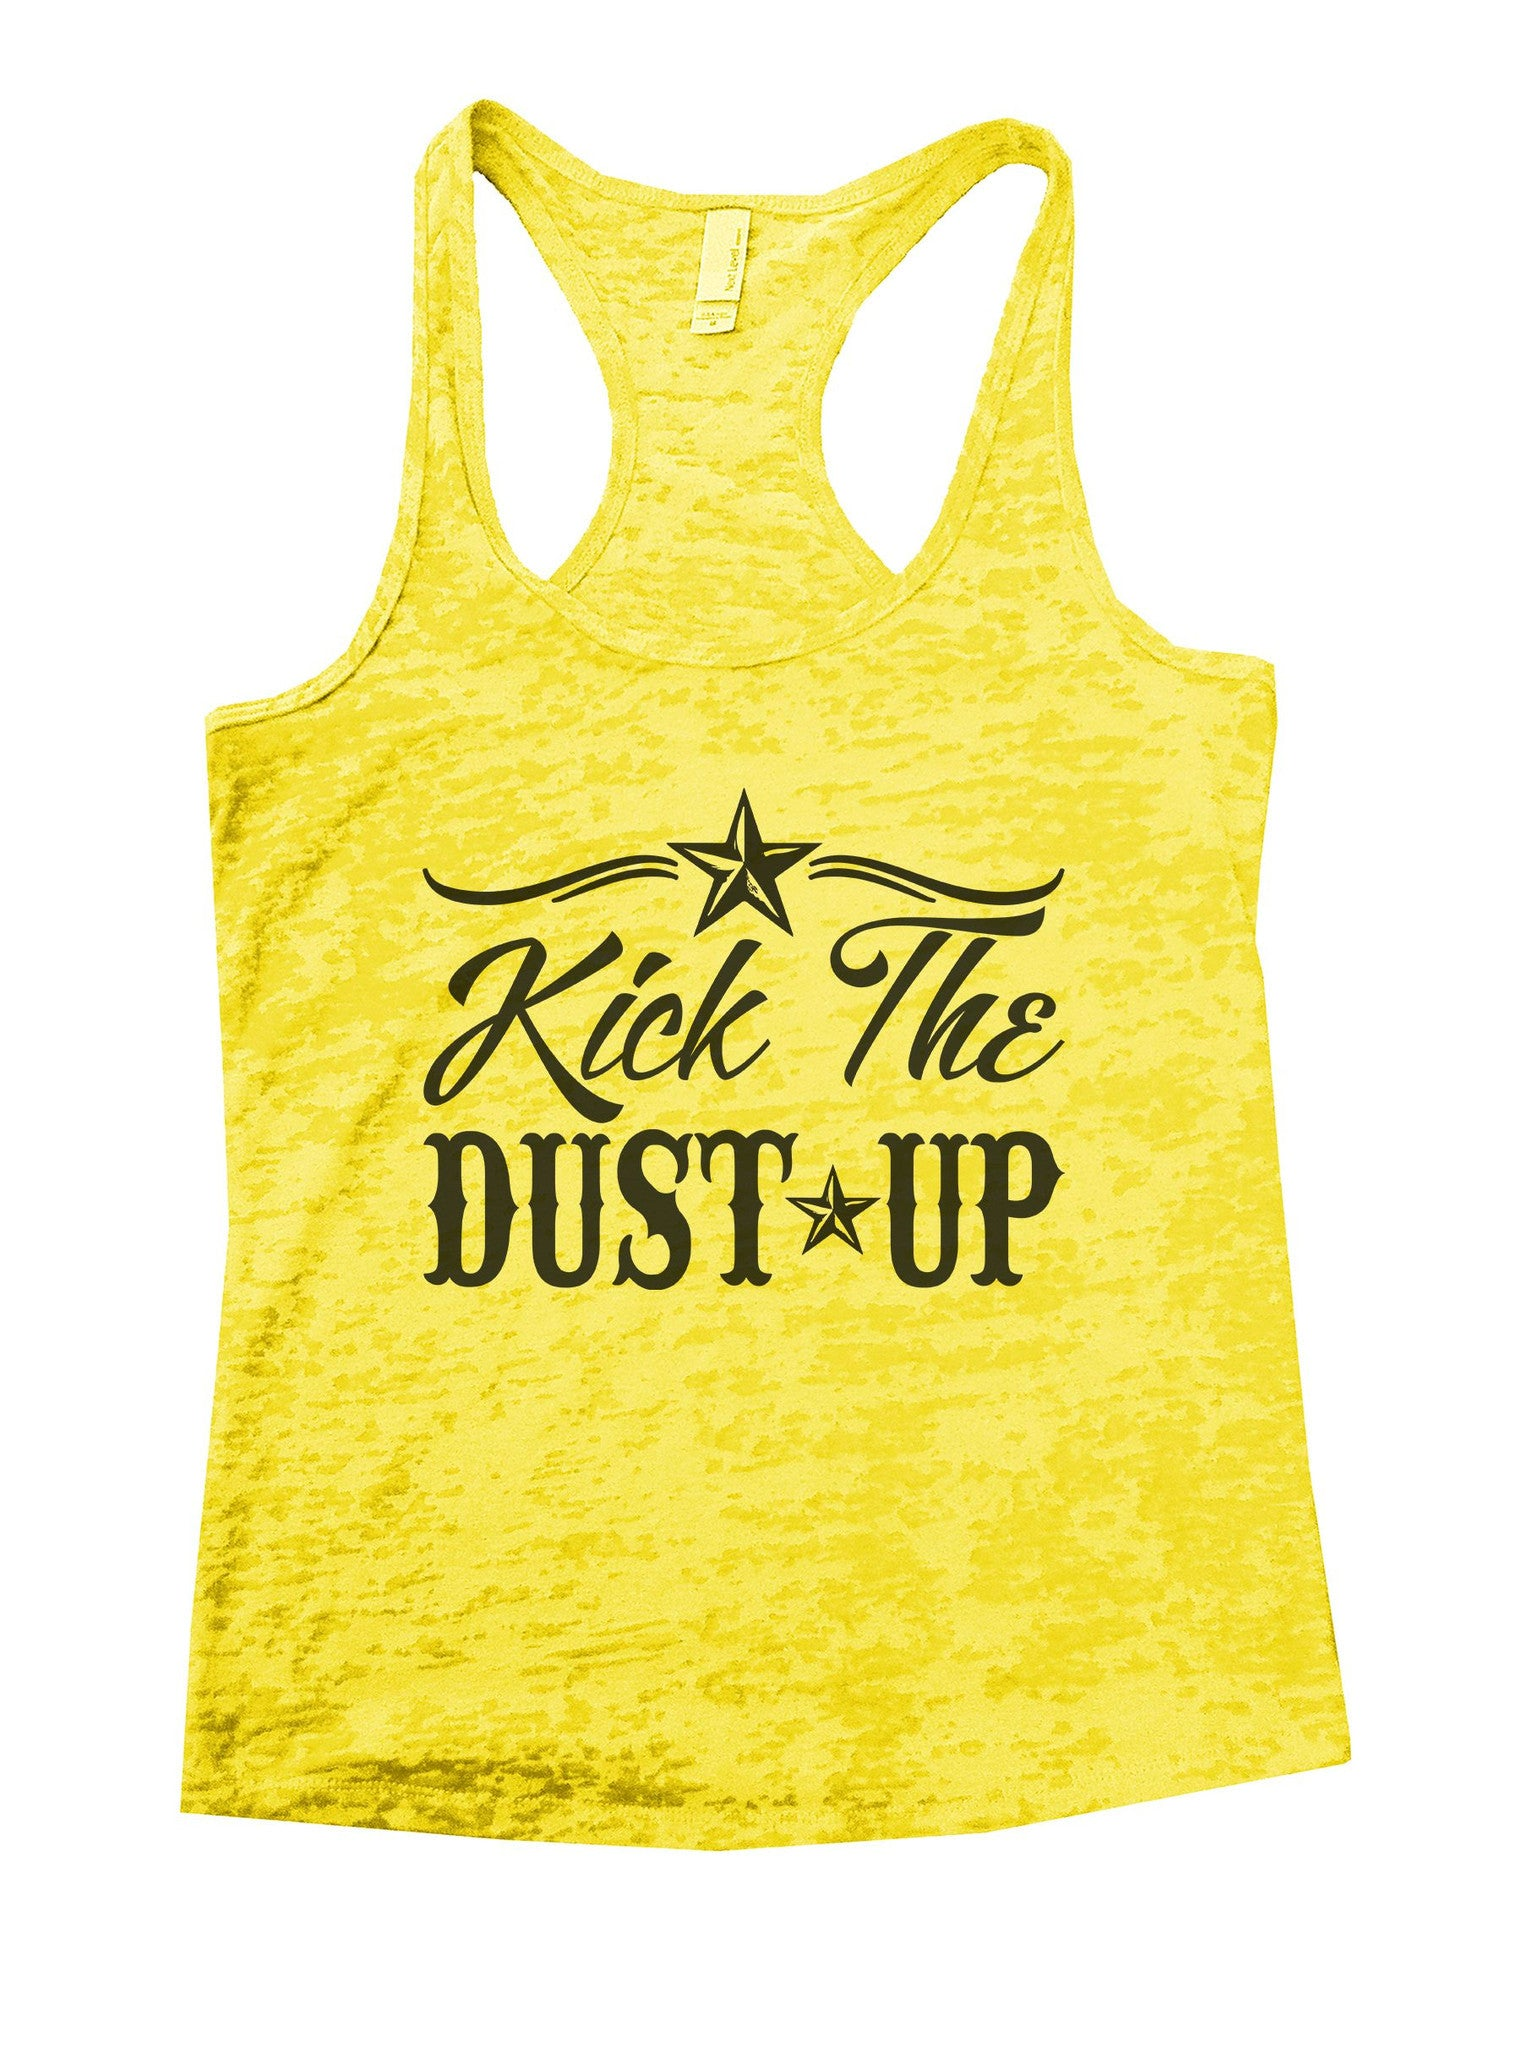 Kick The Dust Up Burnout Tank Top By BurnoutTankTops.com - 1028 - Funny Shirts Tank Tops Burnouts and Triblends  - 6